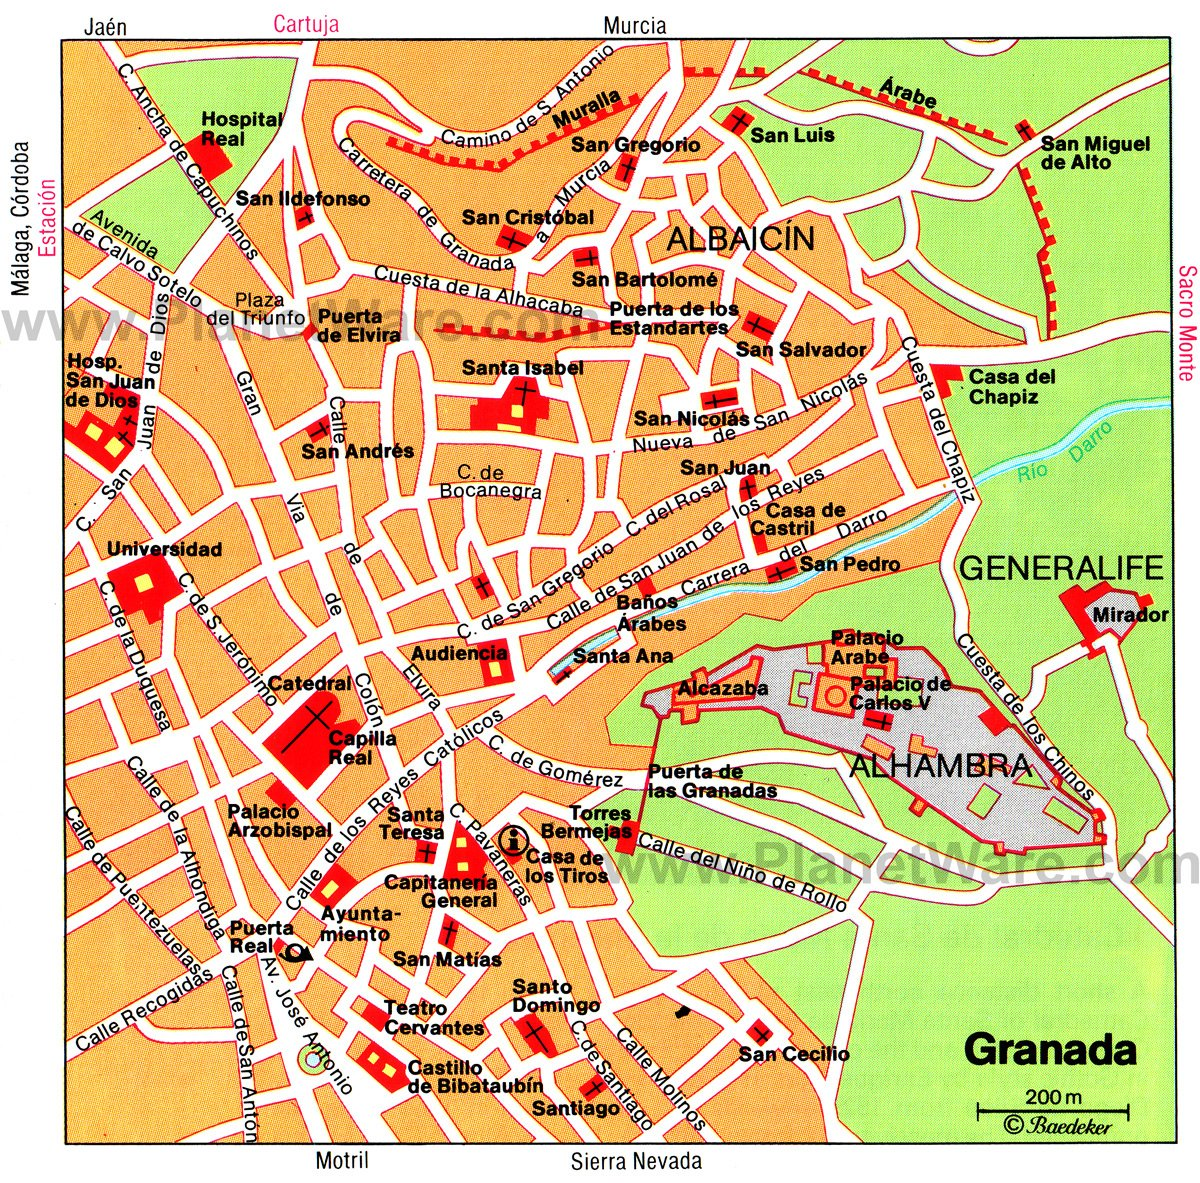 12 Top-Rated Tourist Attractions in Granada | PlanetWare on cadiz spain map, zaragoza spain map, deia spain map, madrid spain map, almeria spain map, valencia spain map, bilbao spain map, andujar spain map, pamplona spain map, alhambra spain map, gibraltar map, seville map, rota spain map, chile spain map, malaga spain map, santander spain map, ortigueira spain map, hamburg germany map, salamanca spain map, mieres spain map,